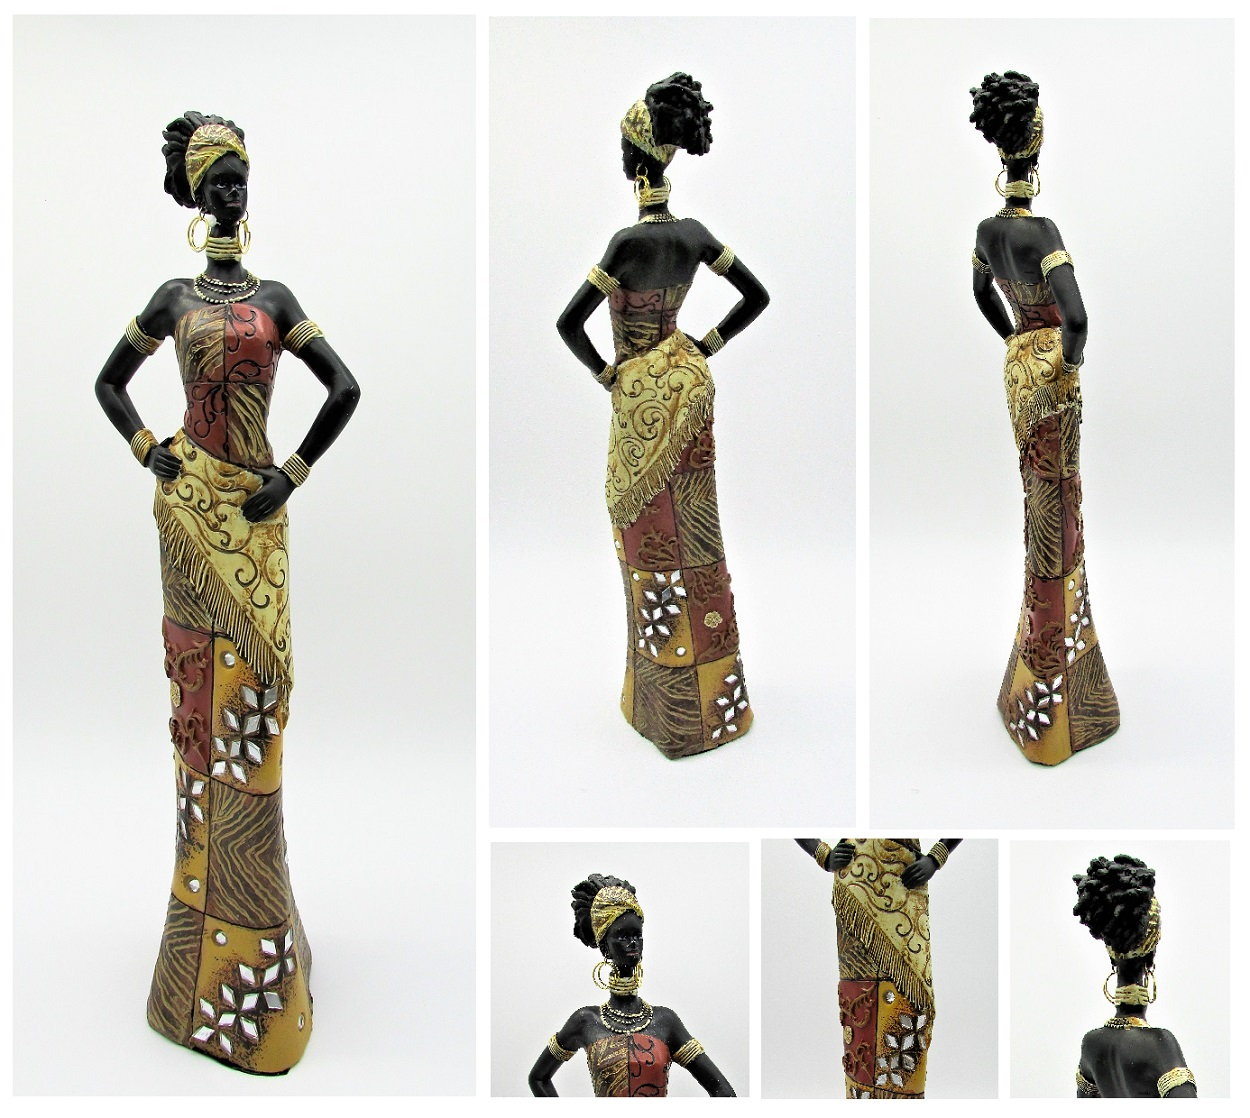 afrikanerin 35 cm figur afrikanische frau massai afrika deko ebay. Black Bedroom Furniture Sets. Home Design Ideas